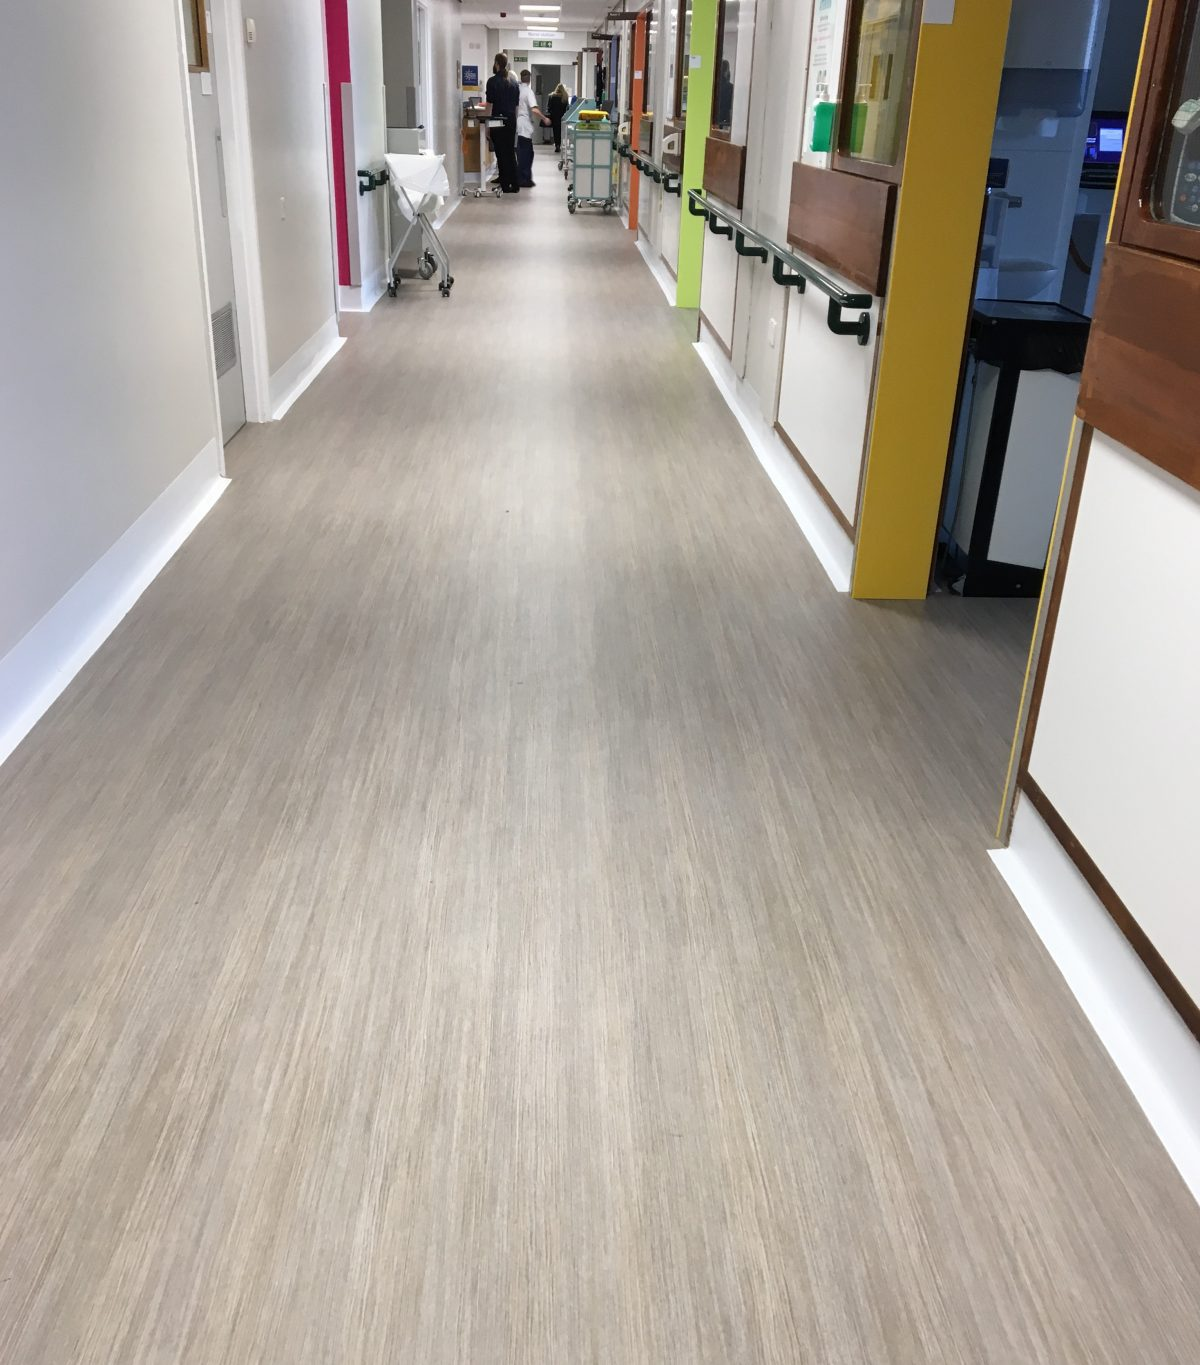 A Cumberlidge install Polyflor vinyl flooring in dementia friendly ward at Royal Hallamshire hospital in Sheffield